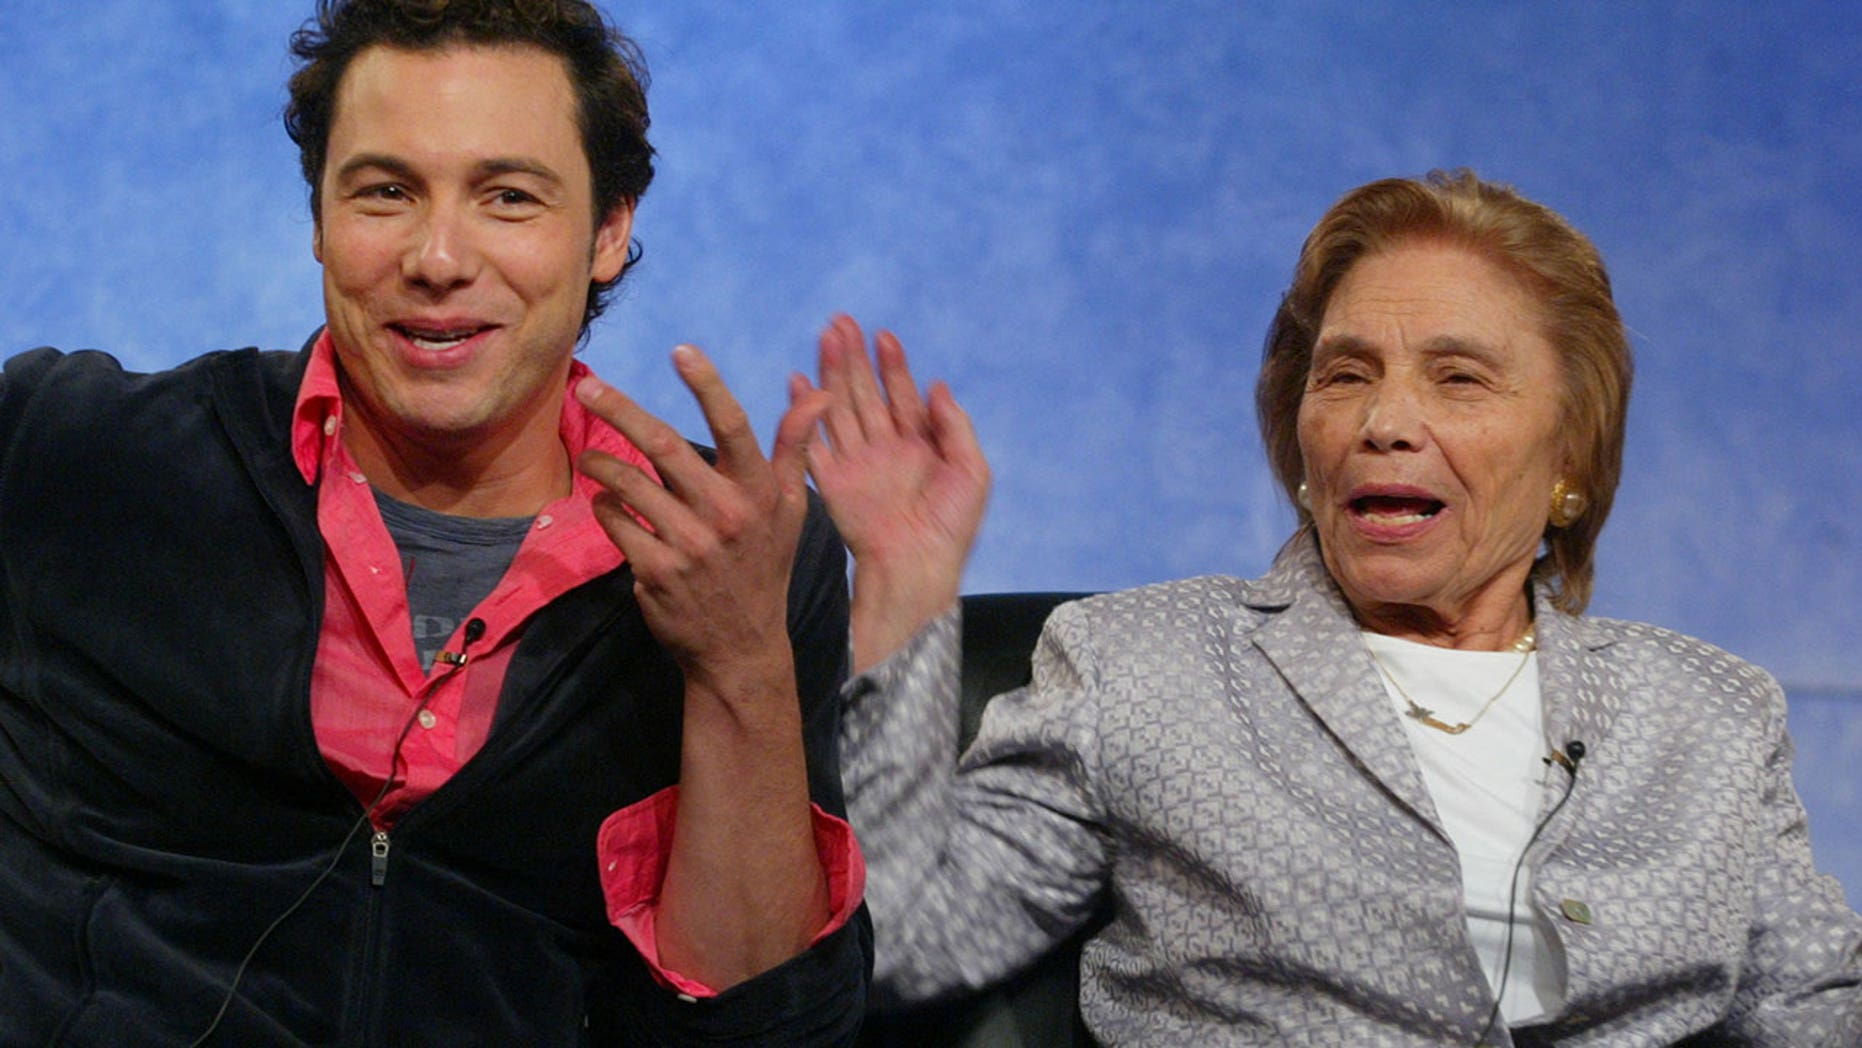 Chef Rocco DiSpirito is in a legal battle with his siblings over their mom's estate